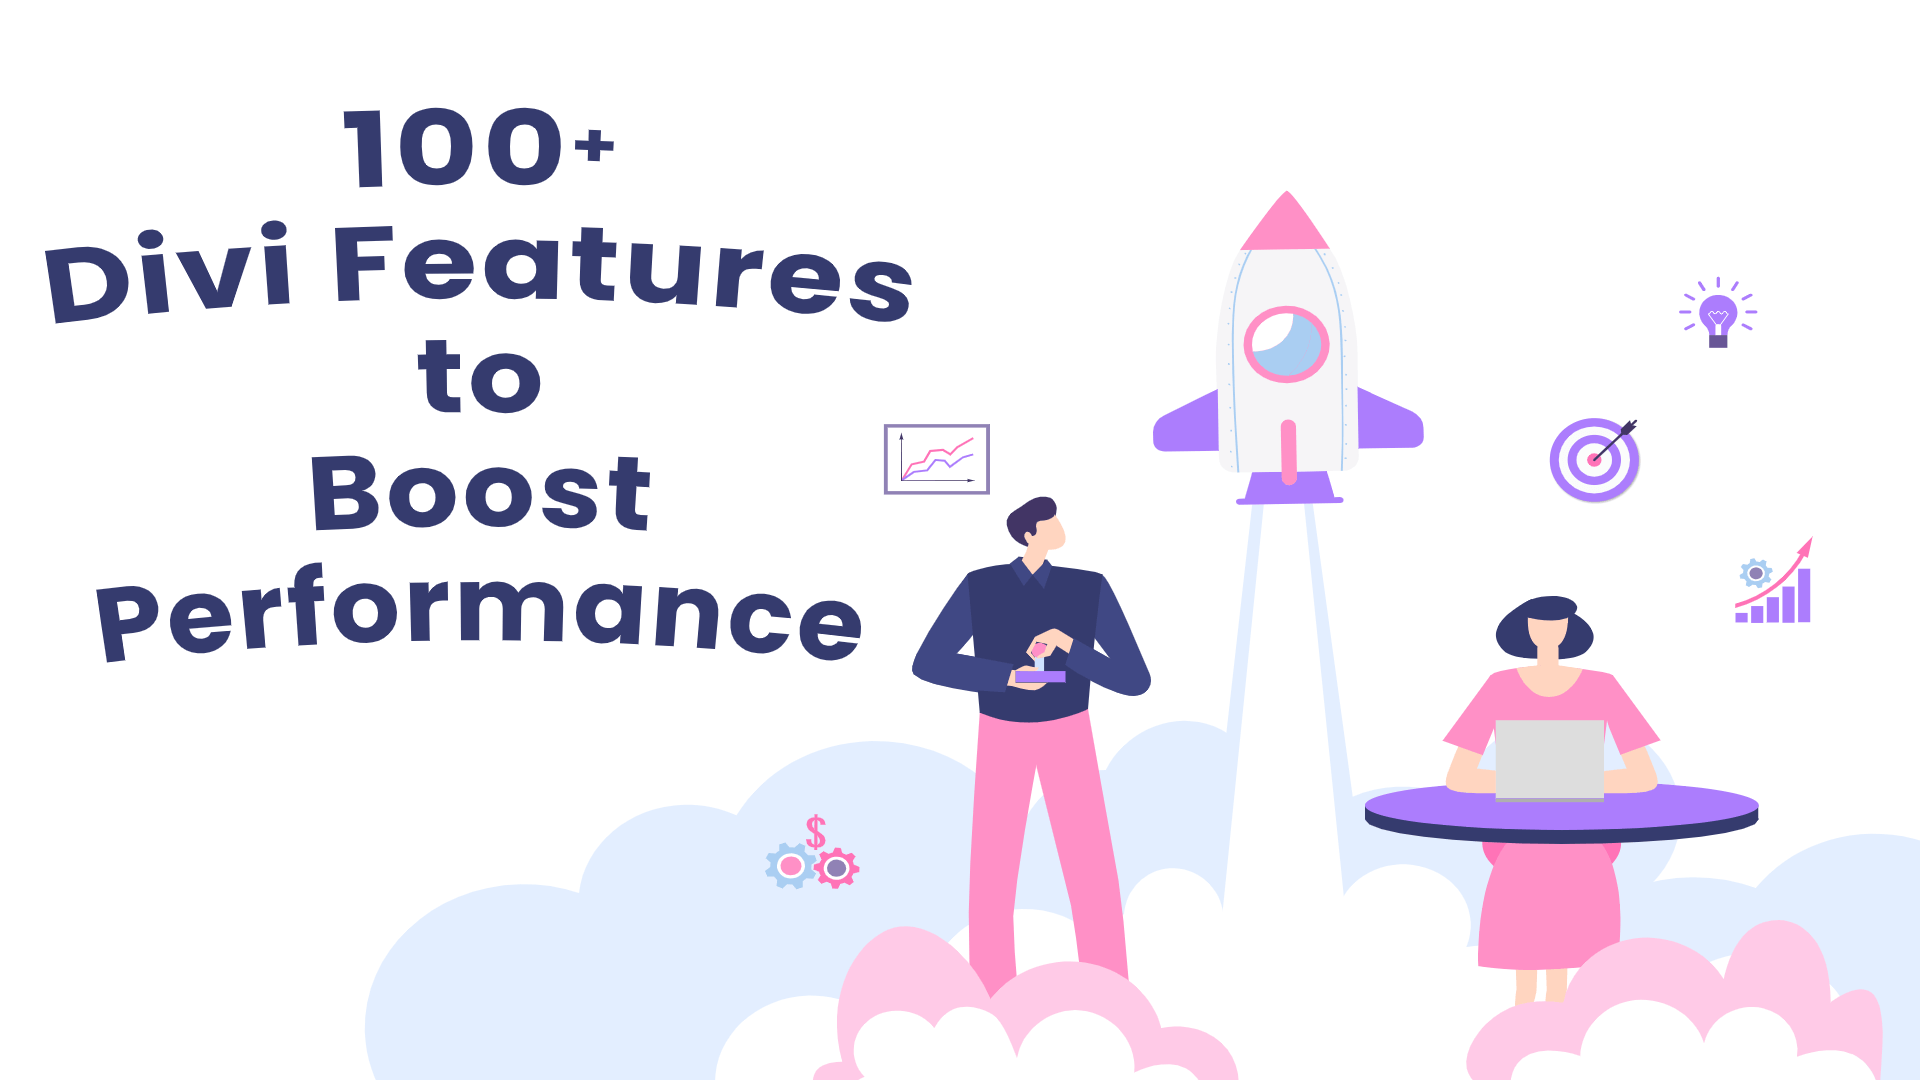 100+ Divi Features to Website Performance